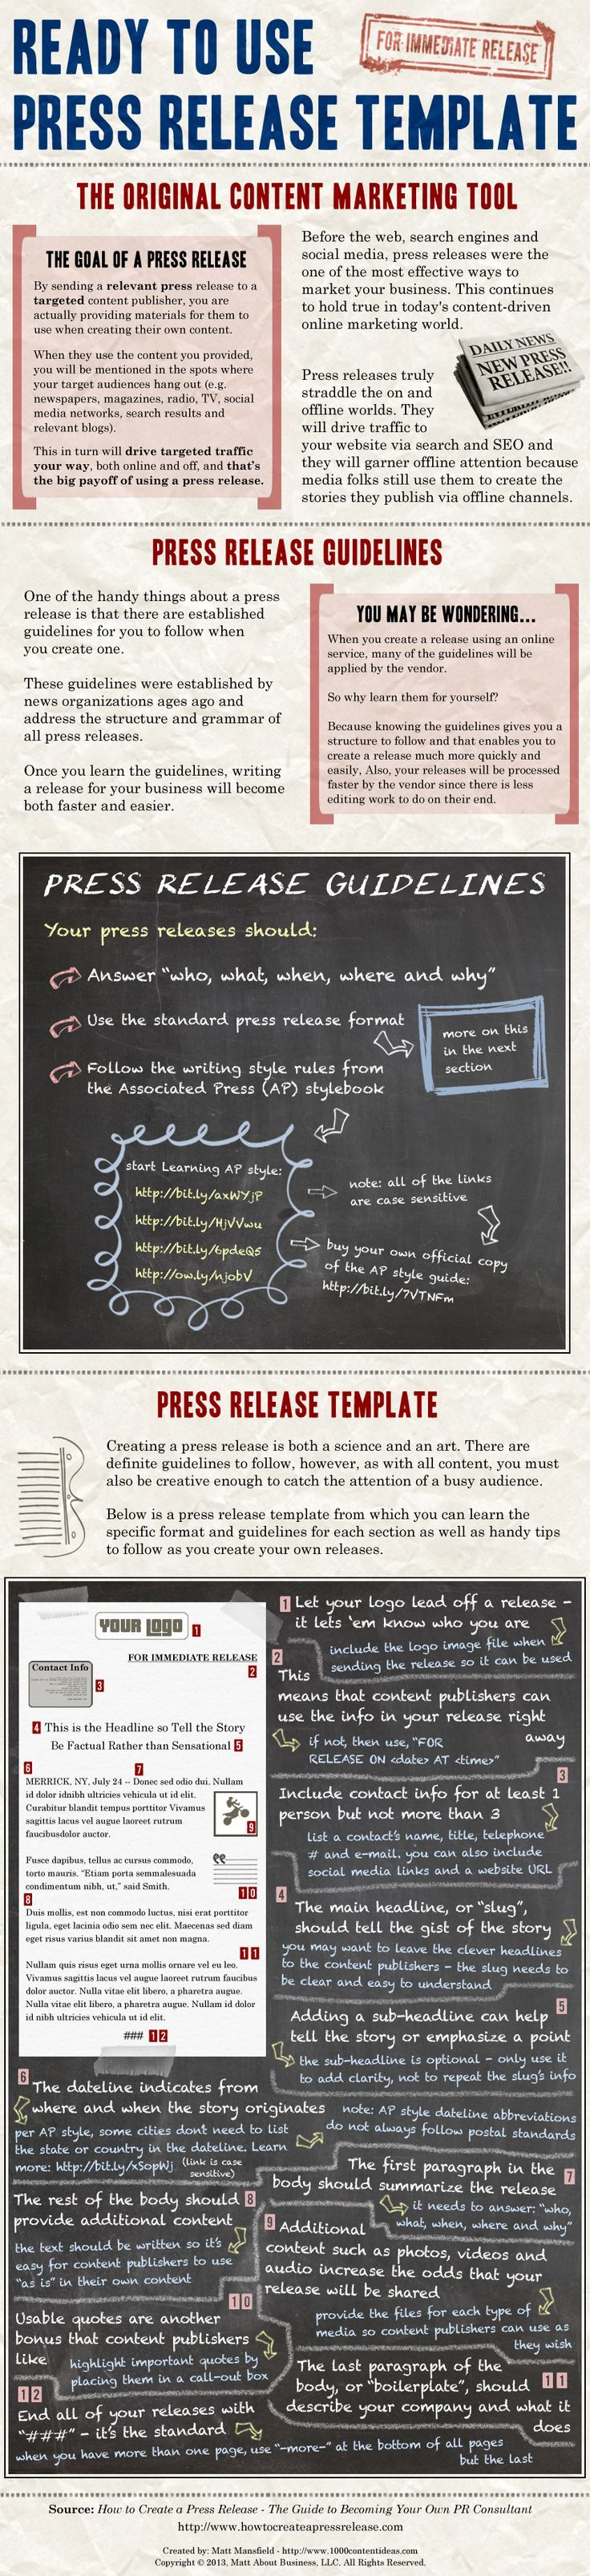 Ready to Use Press Release Template Infographic